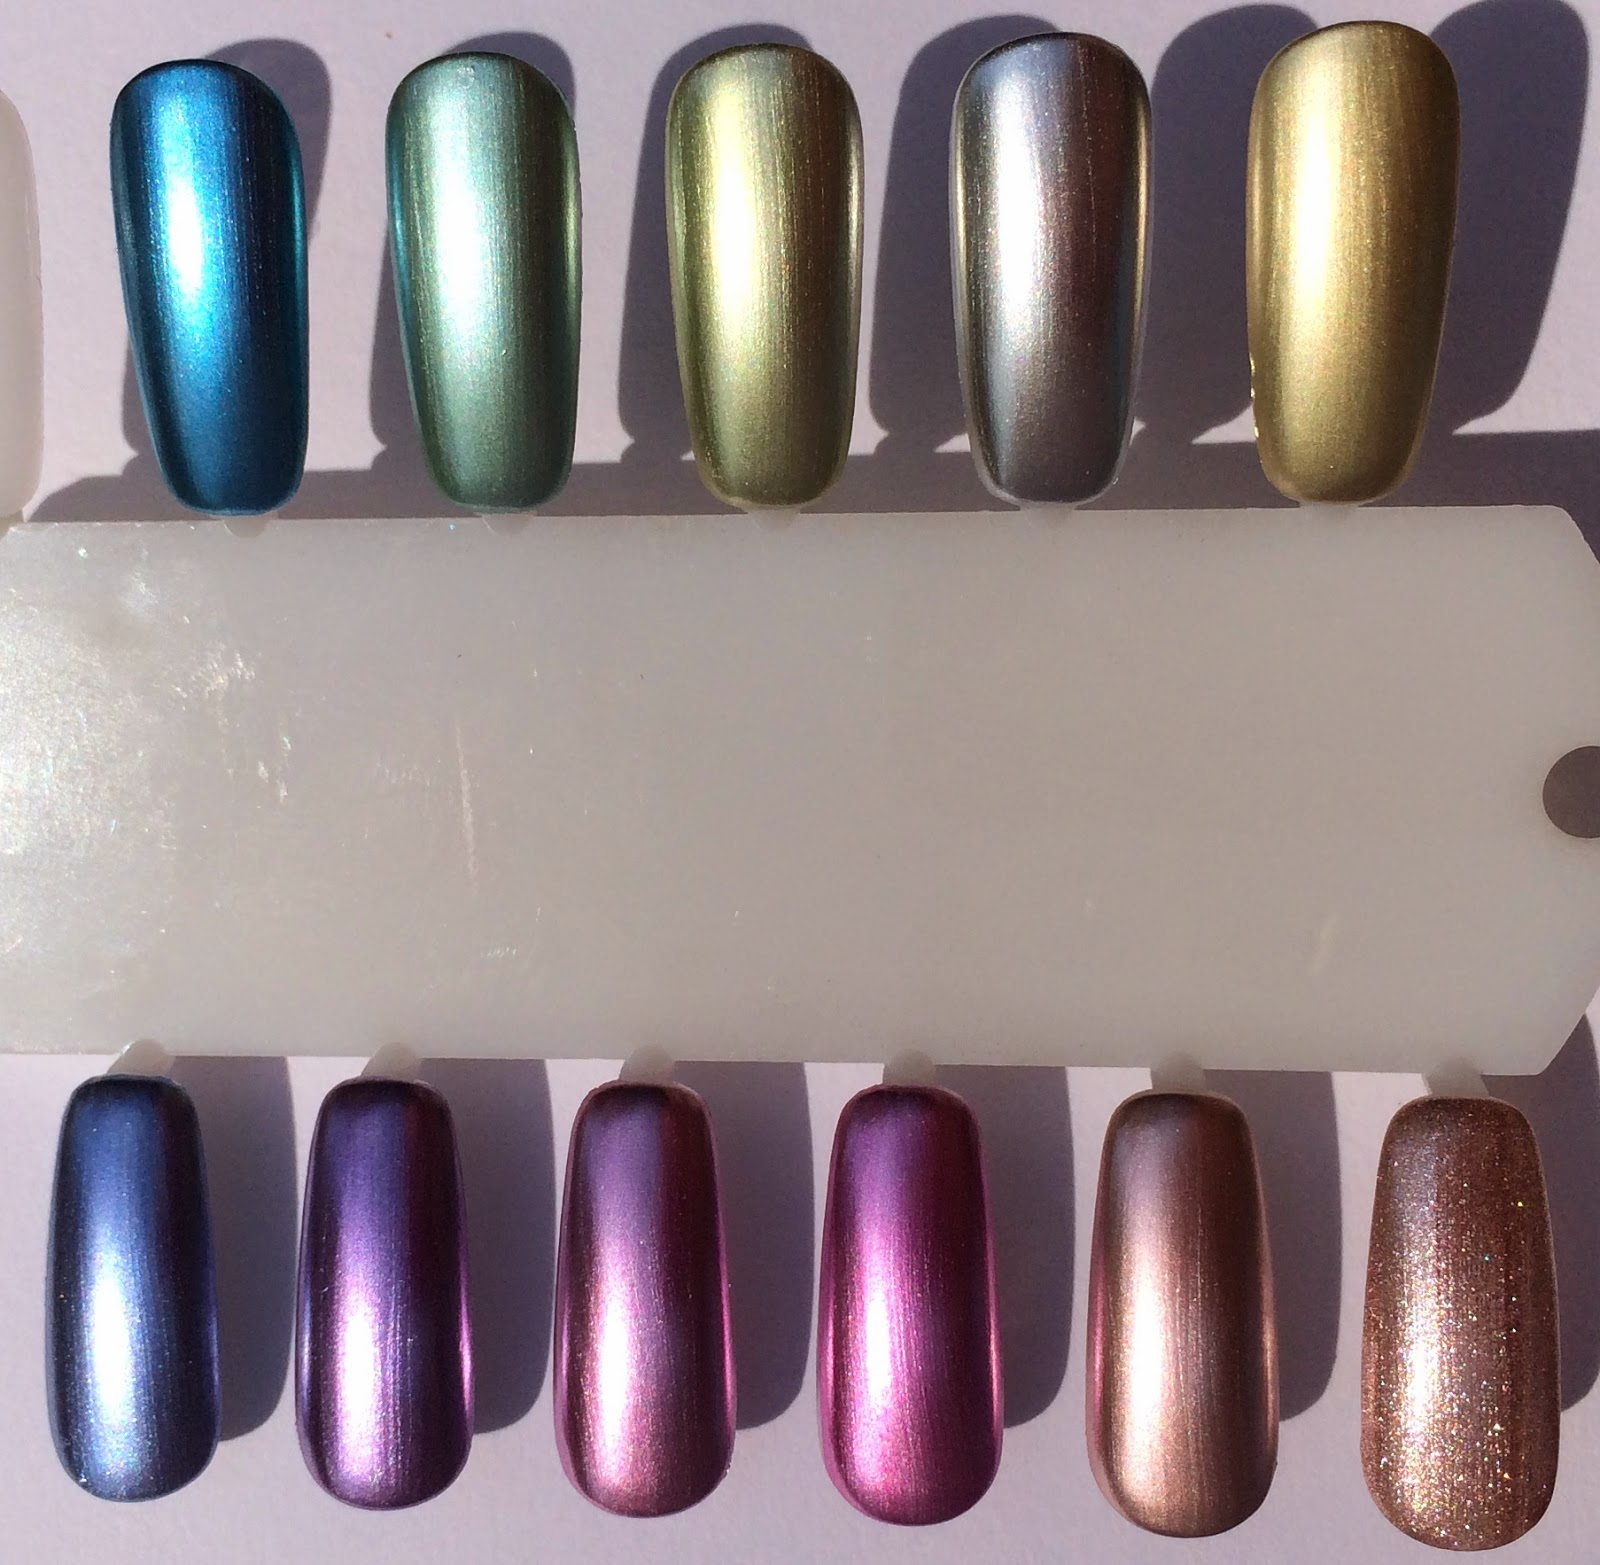 Confessions Of A (Drugstore) Stalker: Swatches Of Sally